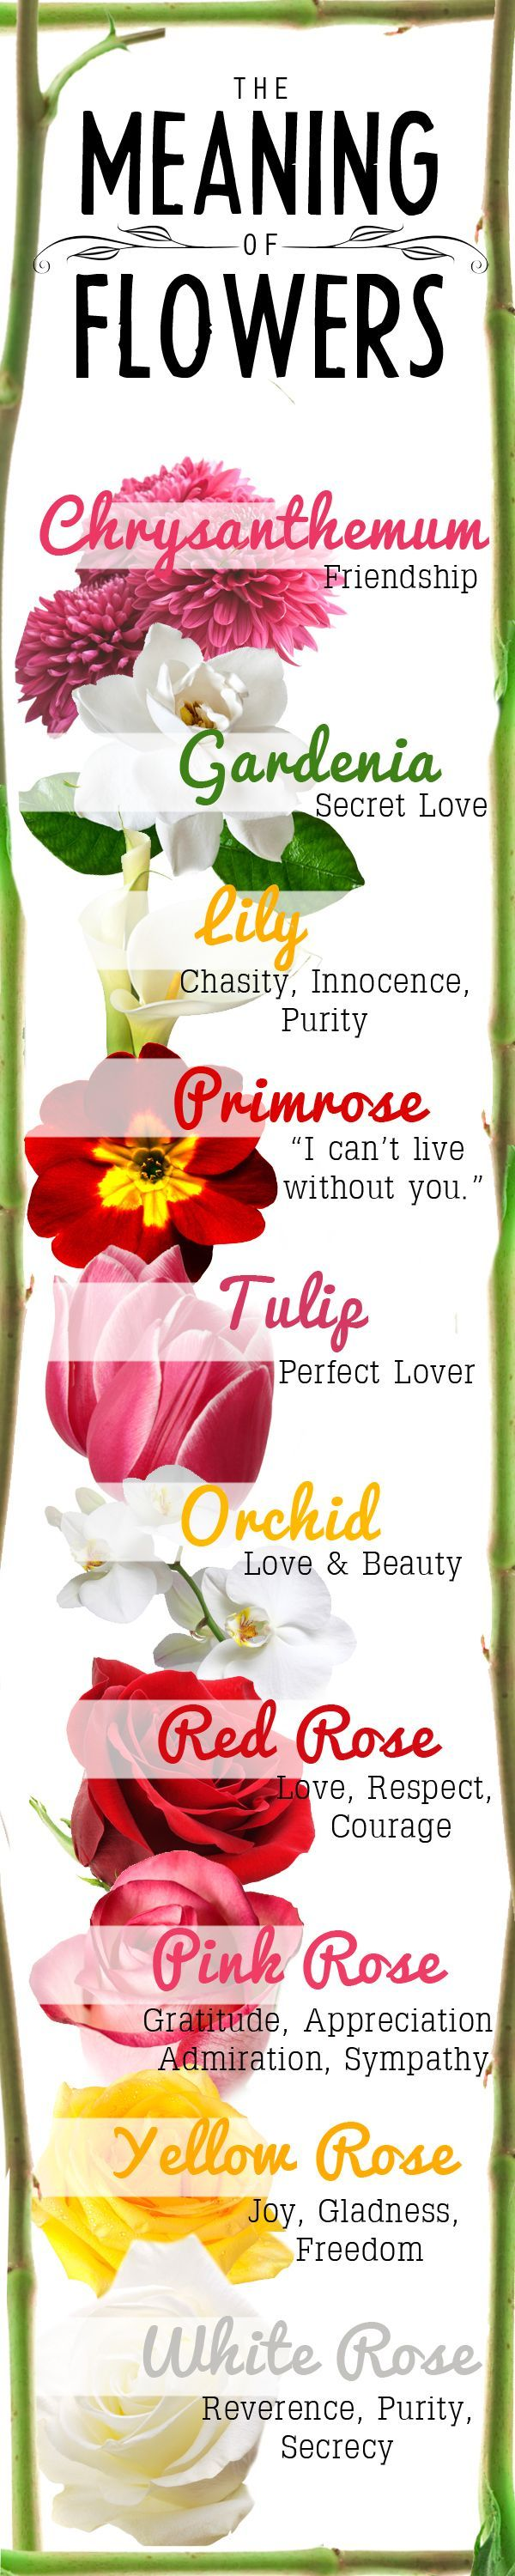 106 best language of flowers images on pinterest language of im getting a tattoo for my granny grandad in a few years and i was going to have a flower to represent my granny so knowing the meaning of flowers would izmirmasajfo